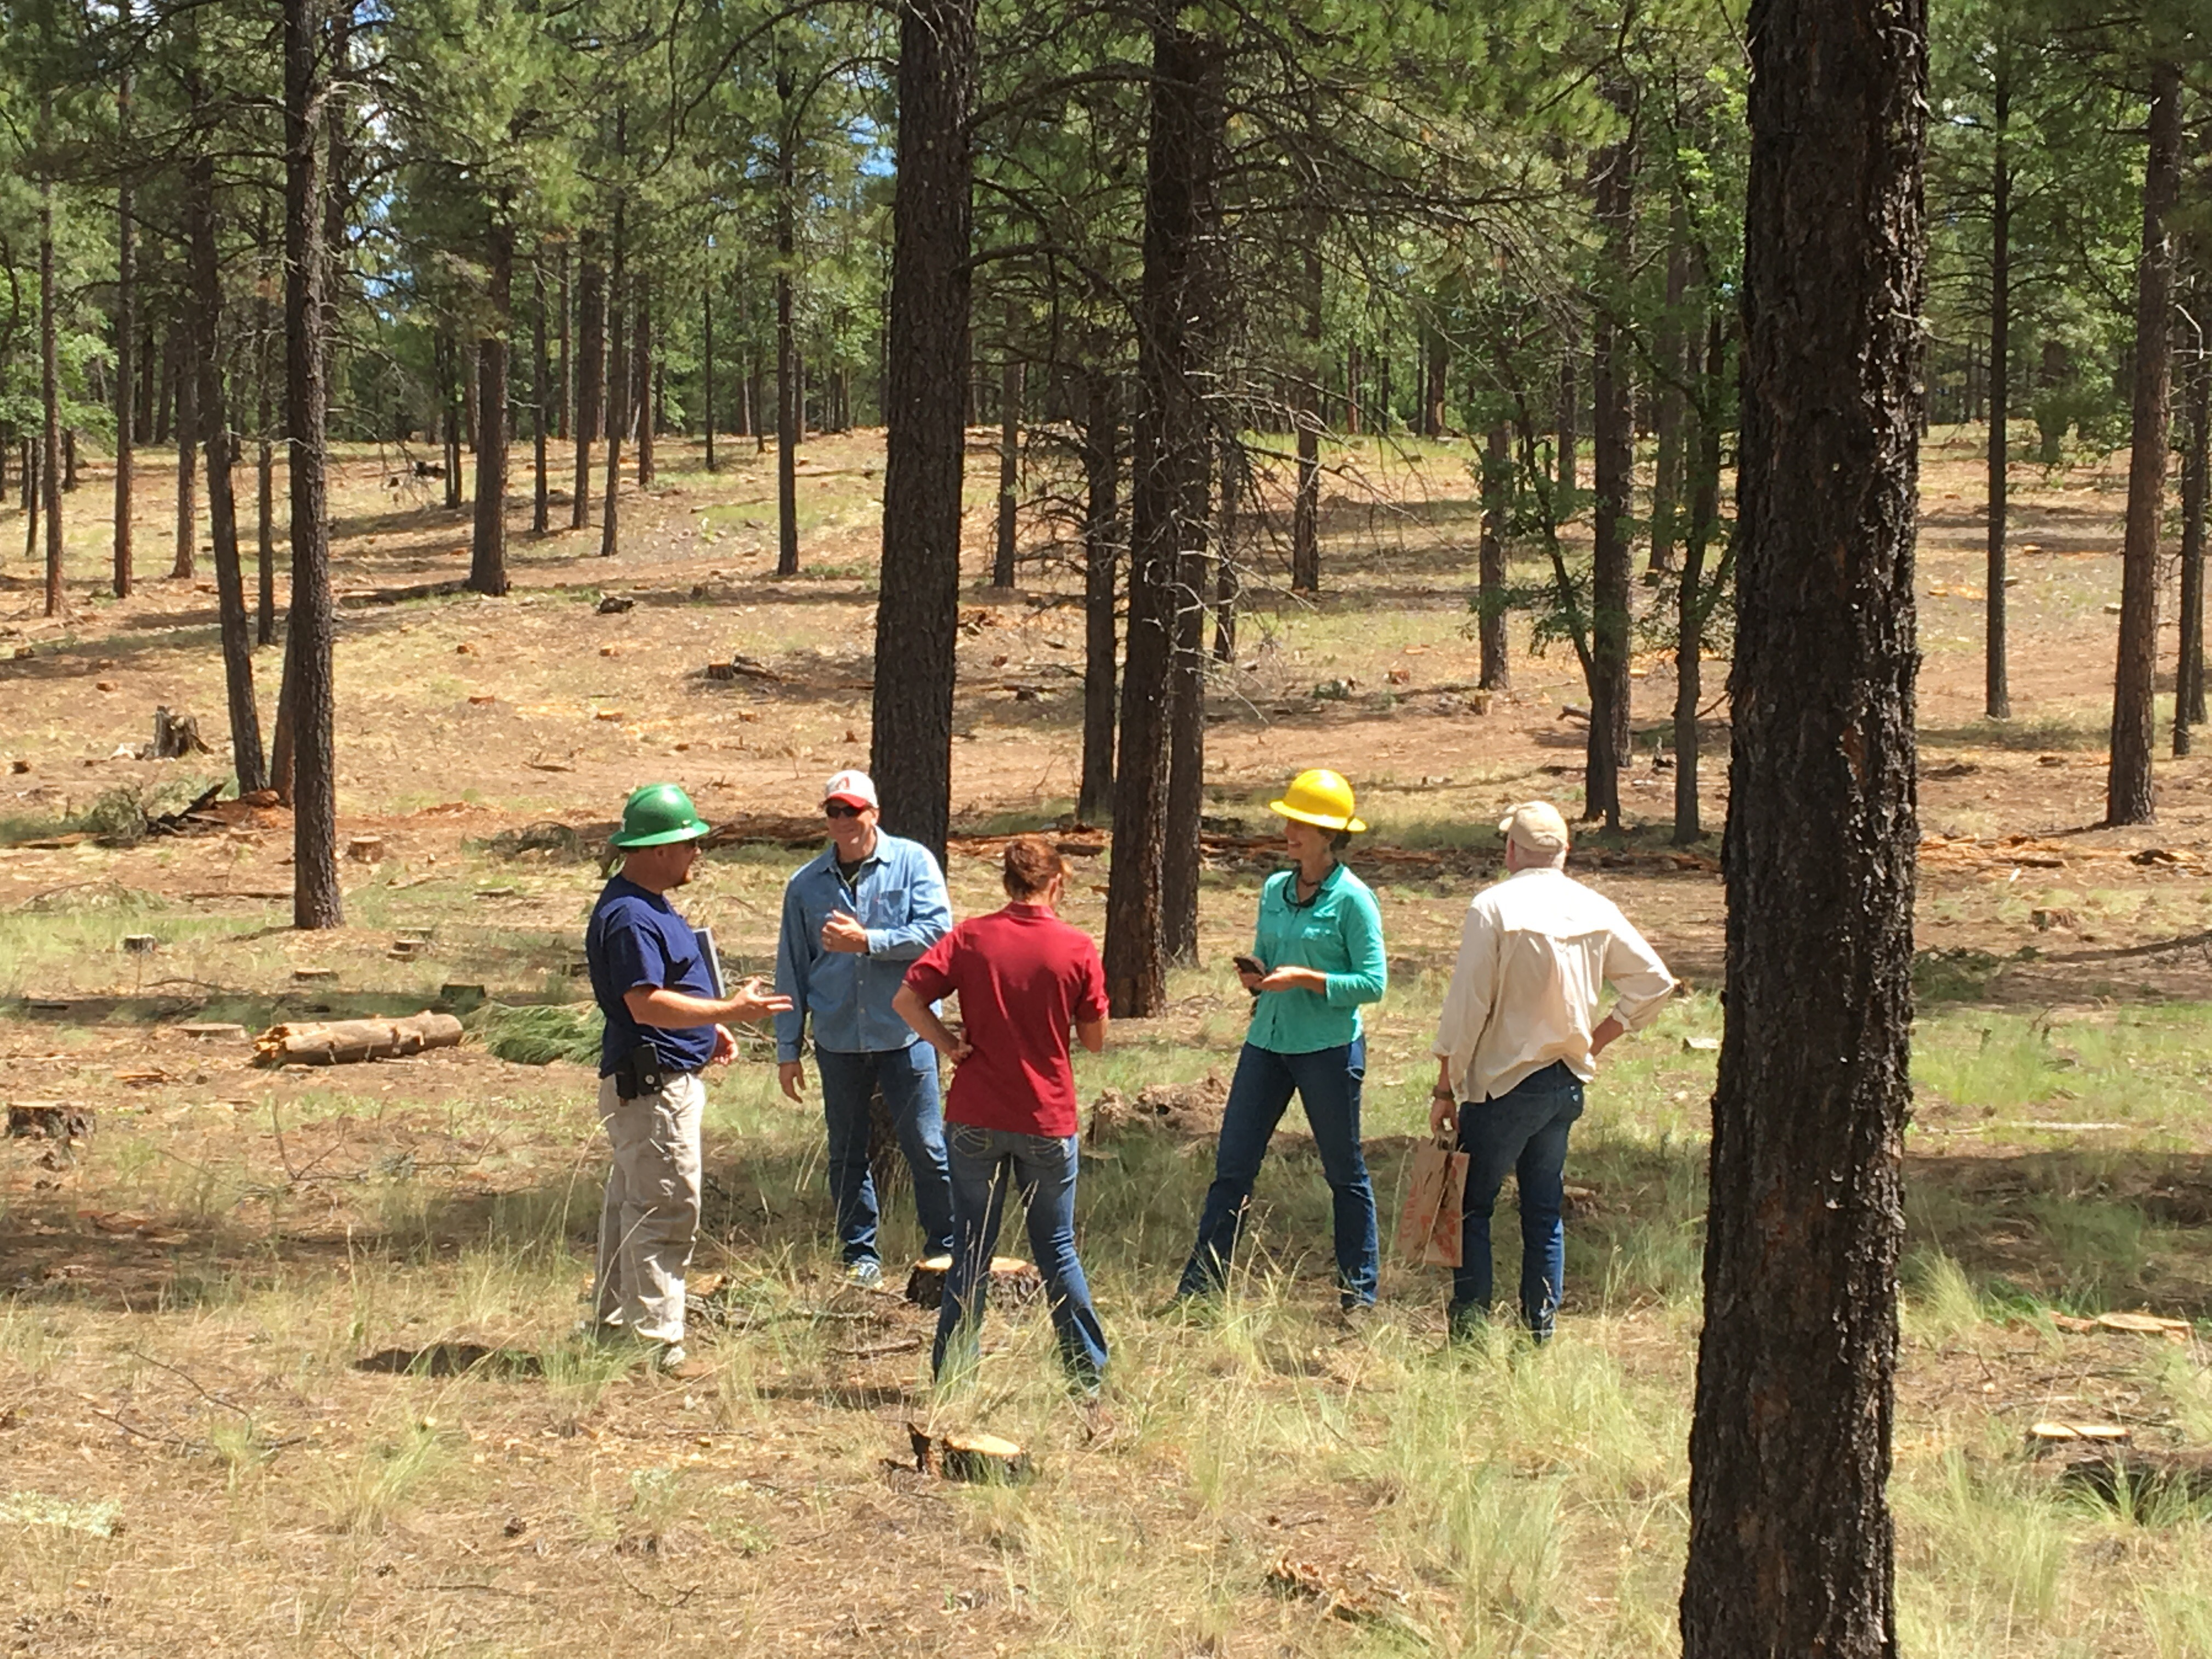 A group of five foresters standing and talking out in a forested area.